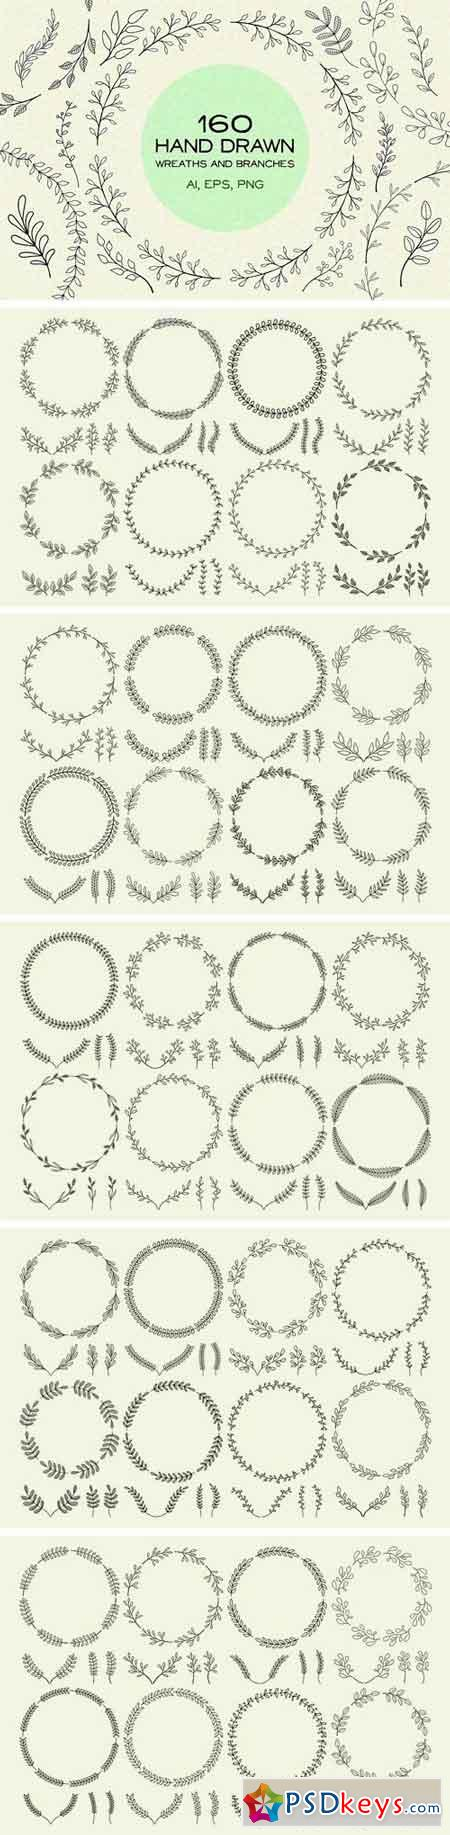 160 Hand Drawn Wreaths and Branches 1436271